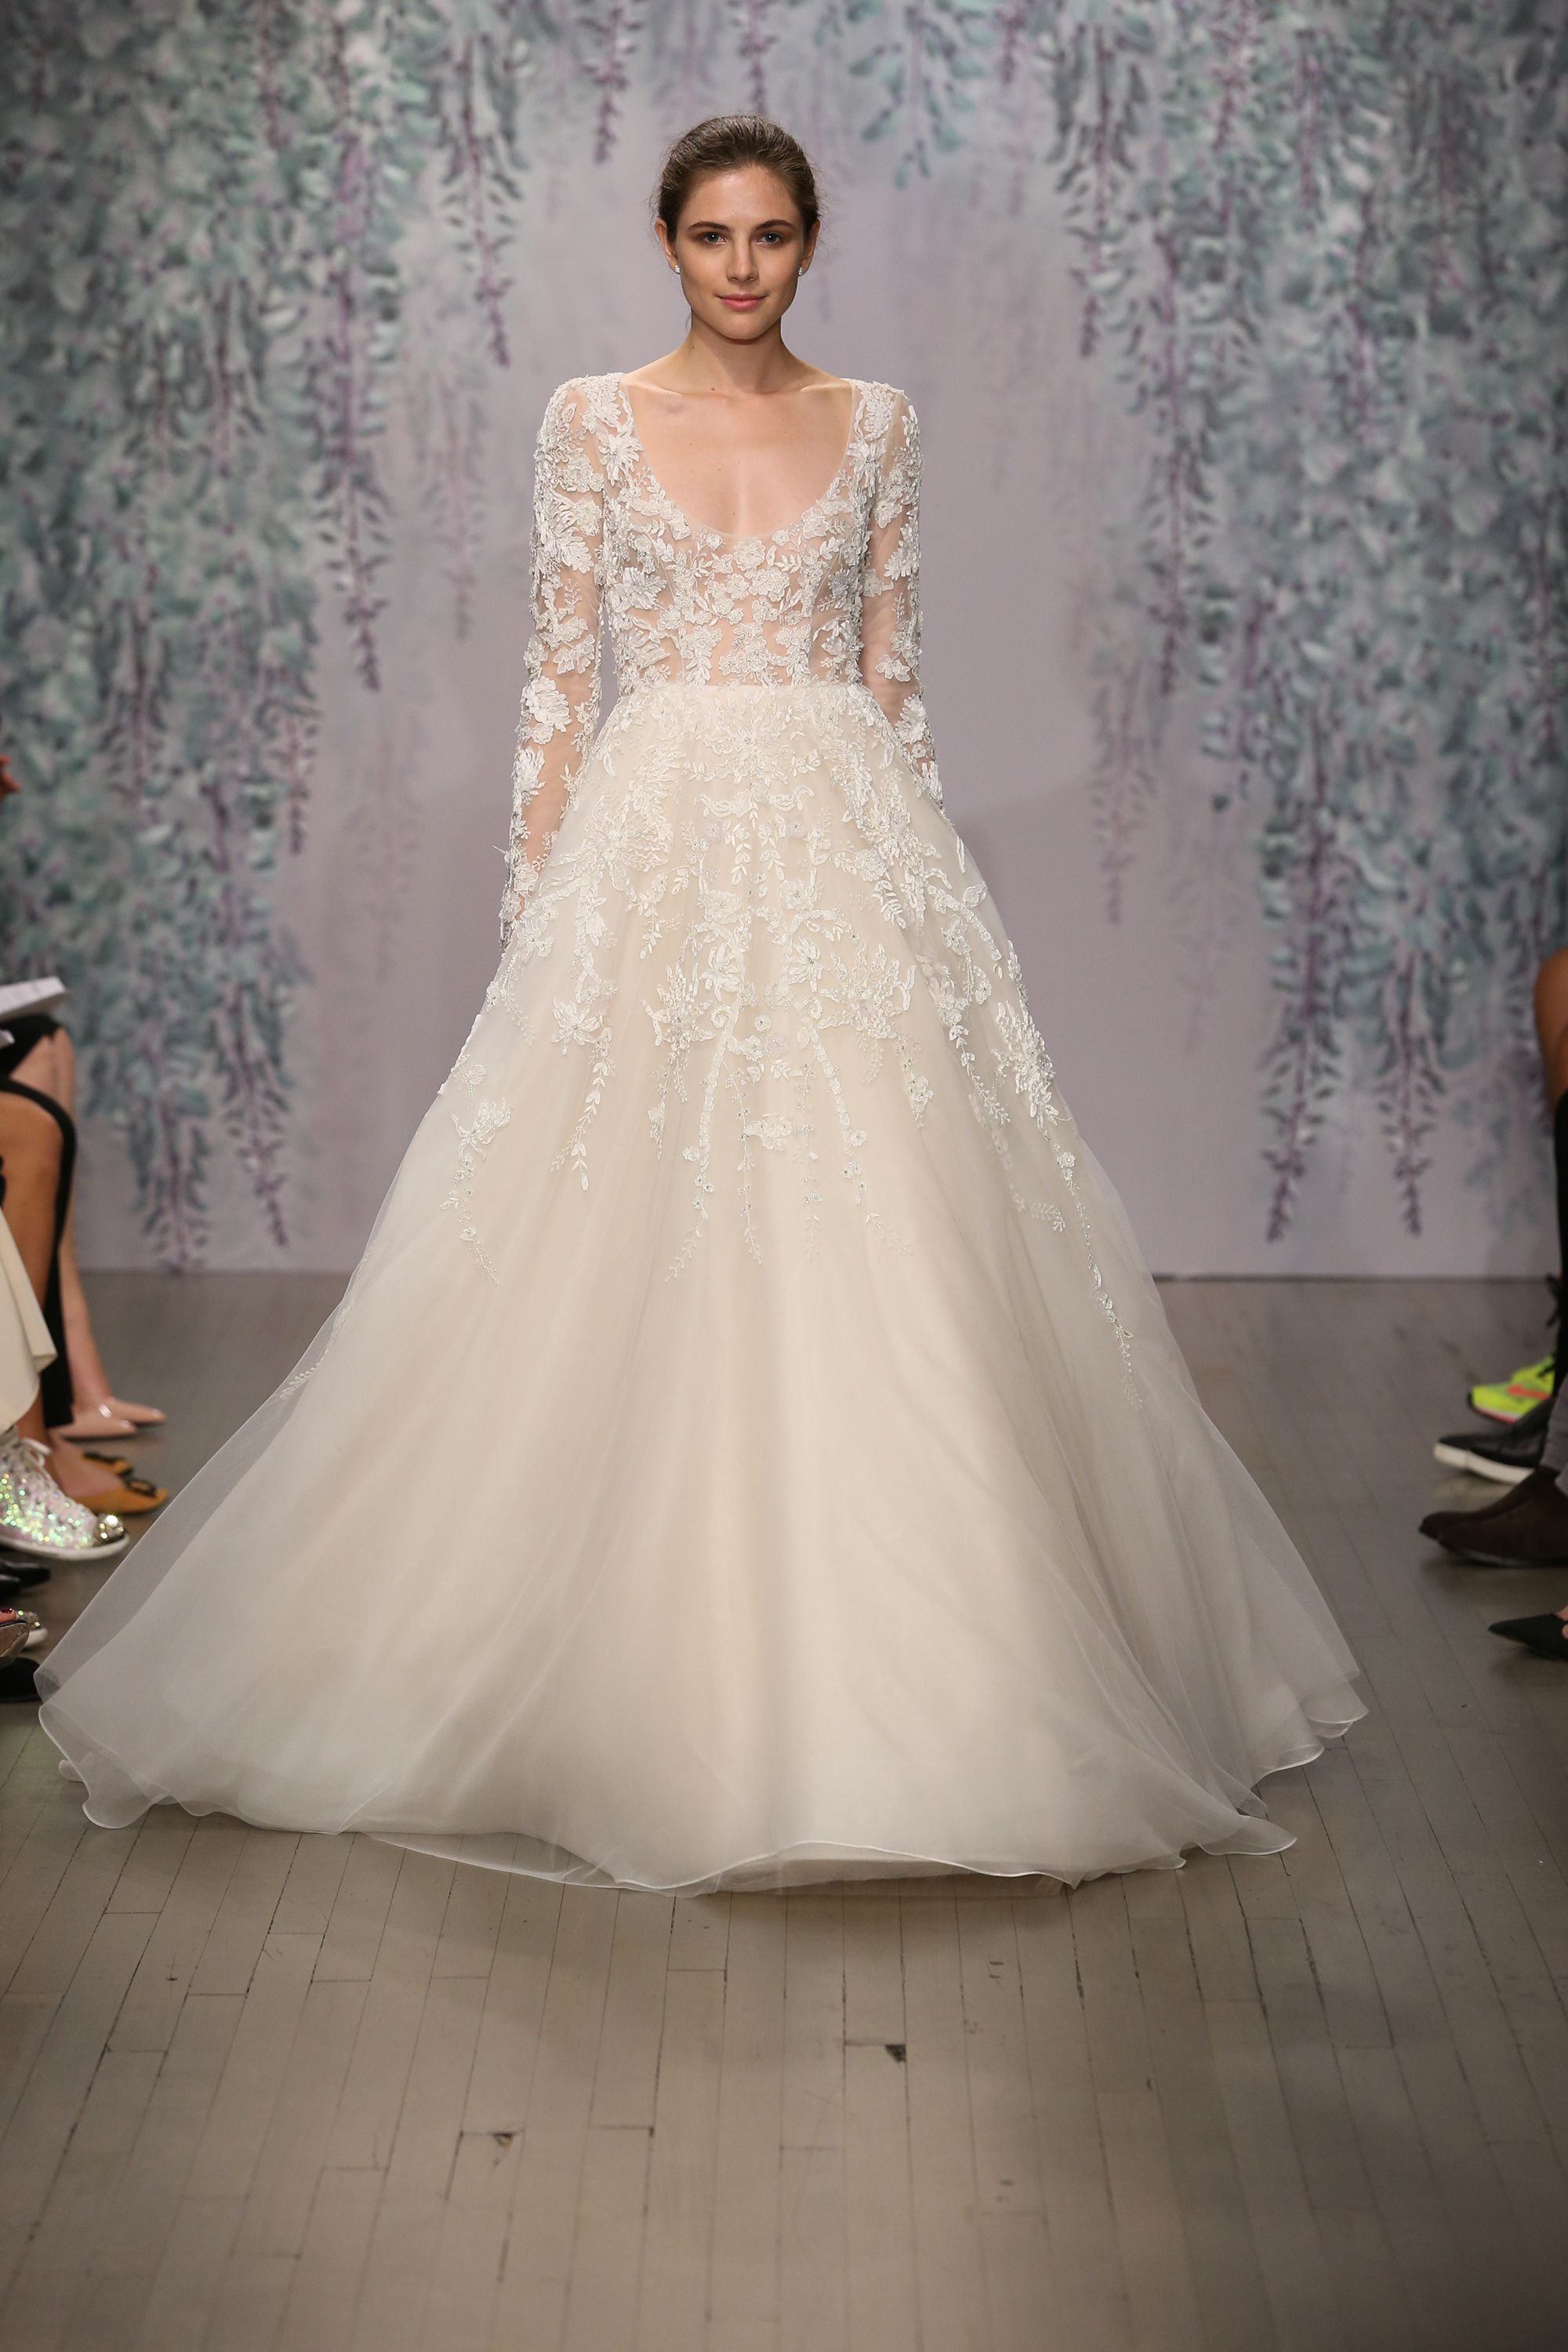 Best In Bridal Vera Wang Fall 2016 Illusion Wedding Gown